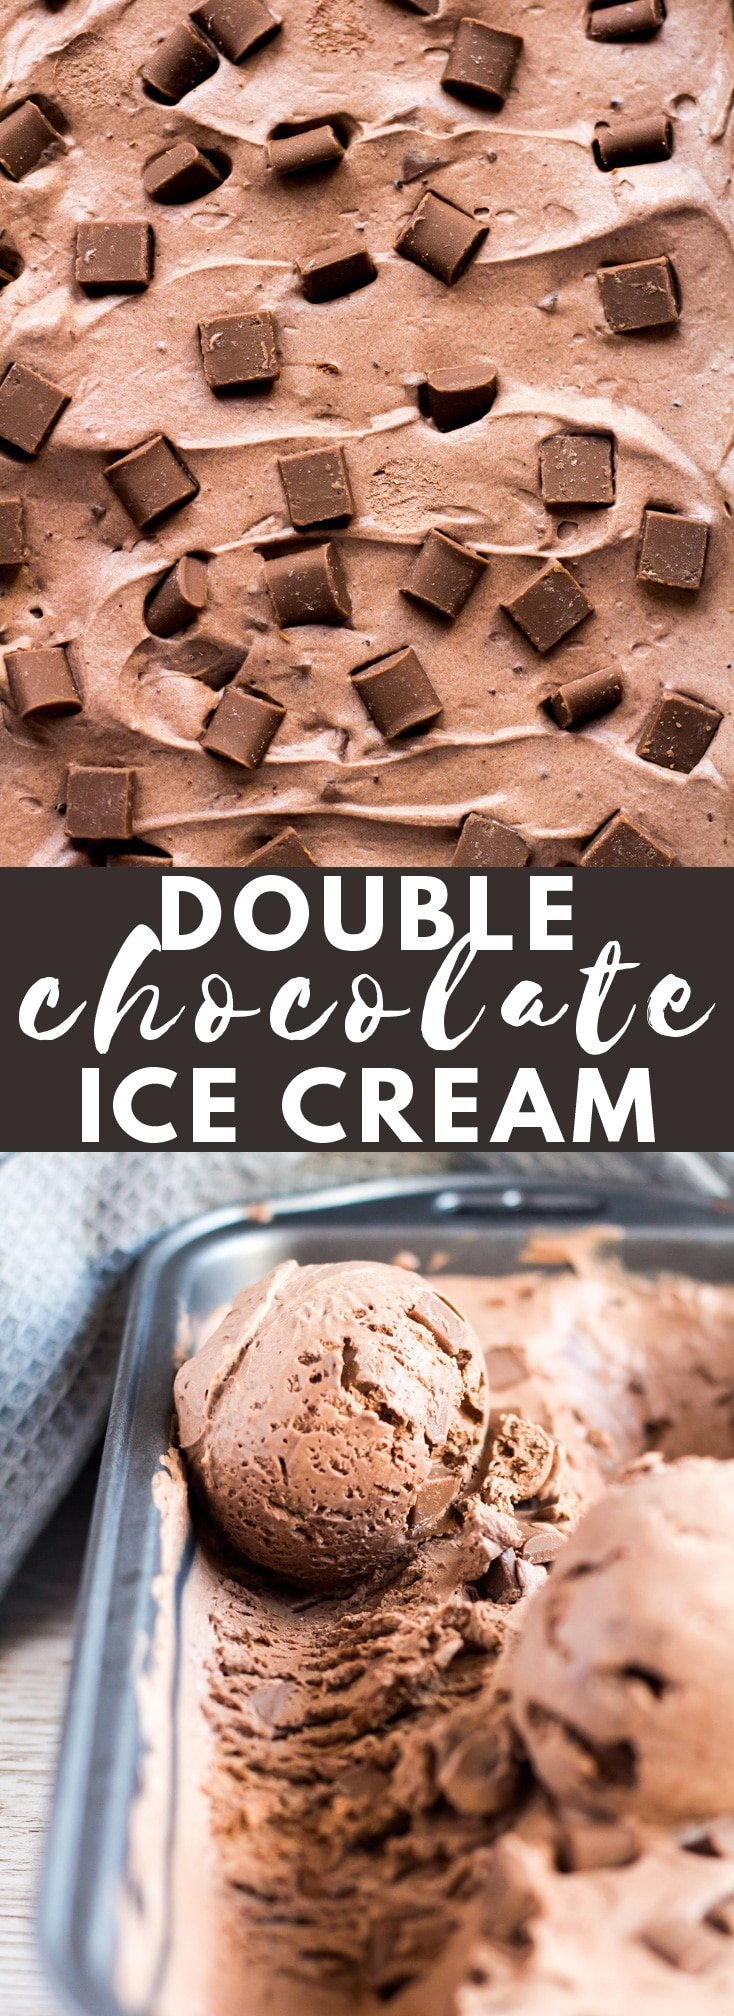 No-Churn Double Chocolate Ice Cream - A super easy recipe for chocolate ice cream that is no-churn, creamy, rich in flavour, loaded with chocolate chips, and only requires 4 simple ingredients to make!